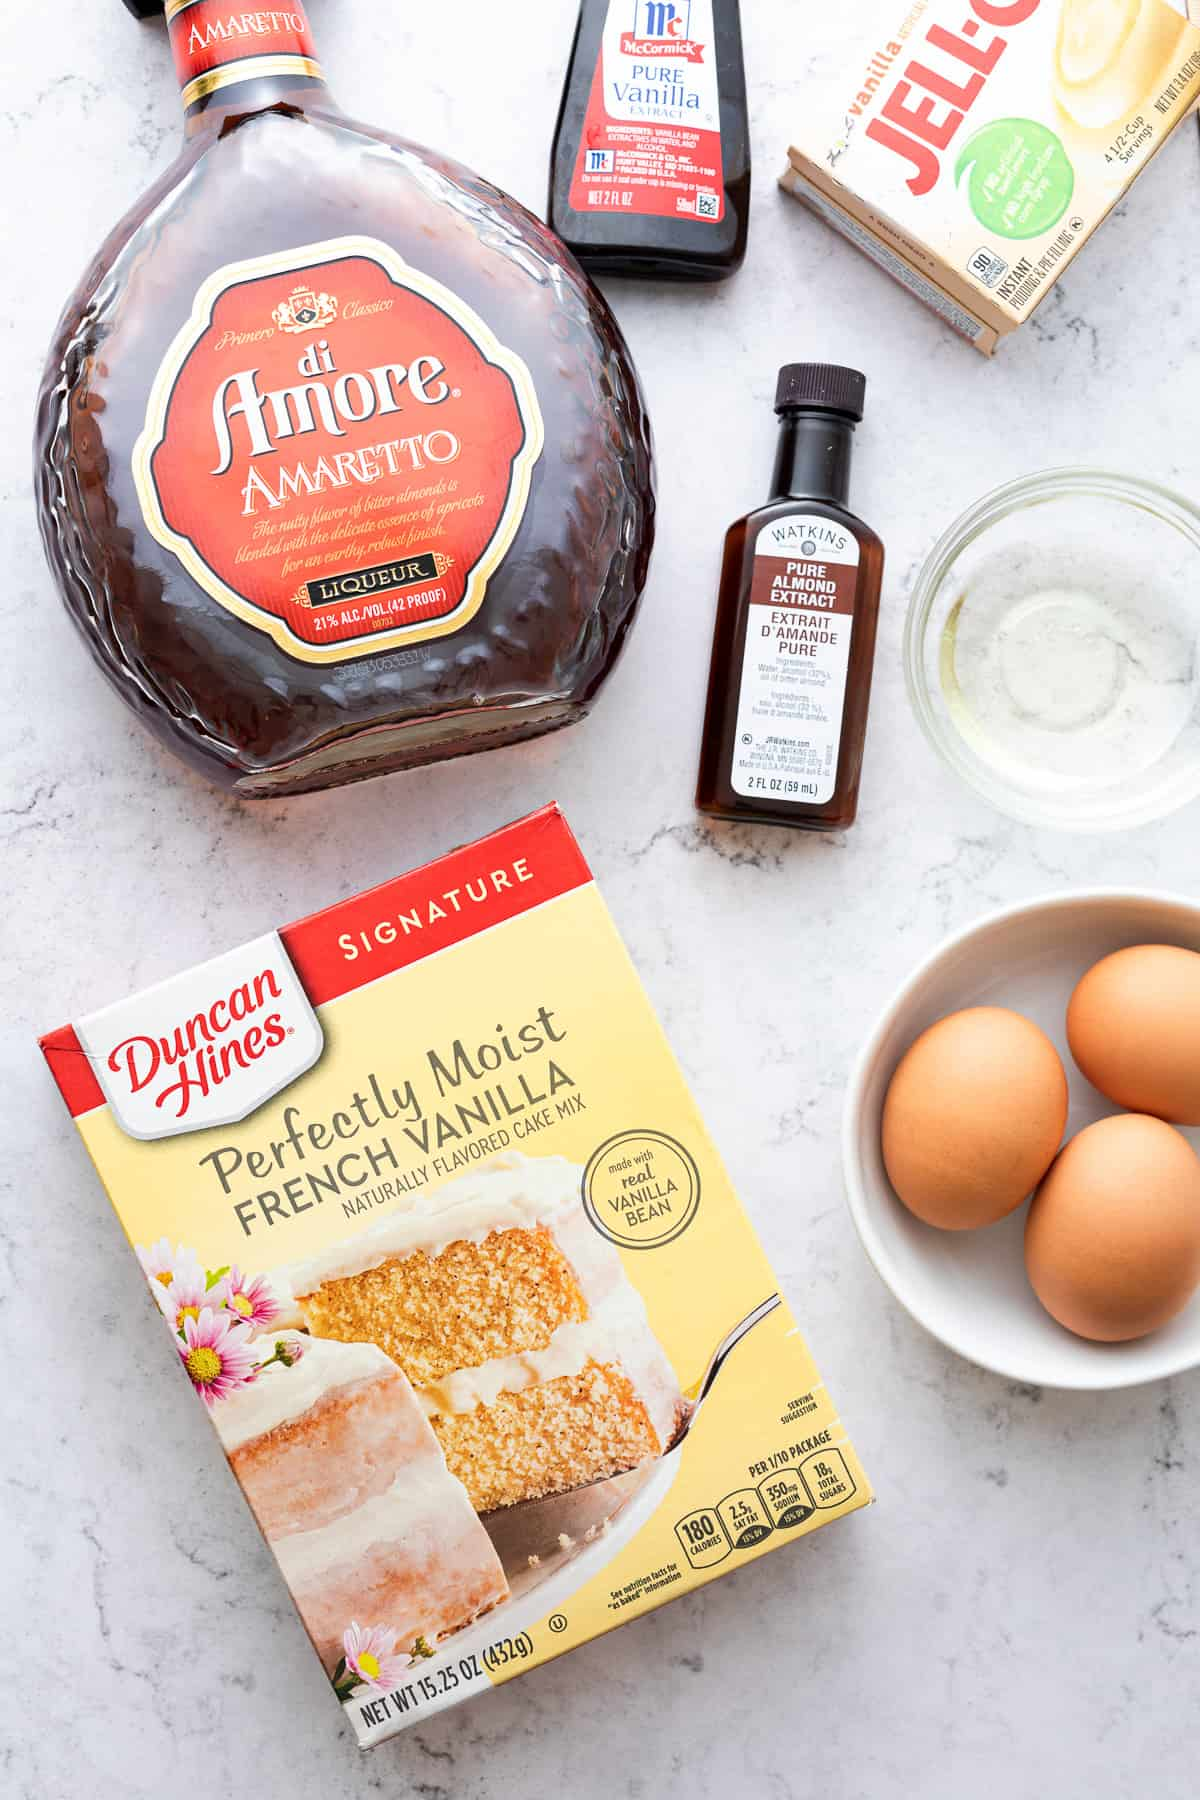 Amaretto Bundt Cake ingredients, including eggs, cake mix, pure almond extract and Amaretto liqueuer, showcased on a big white countertop